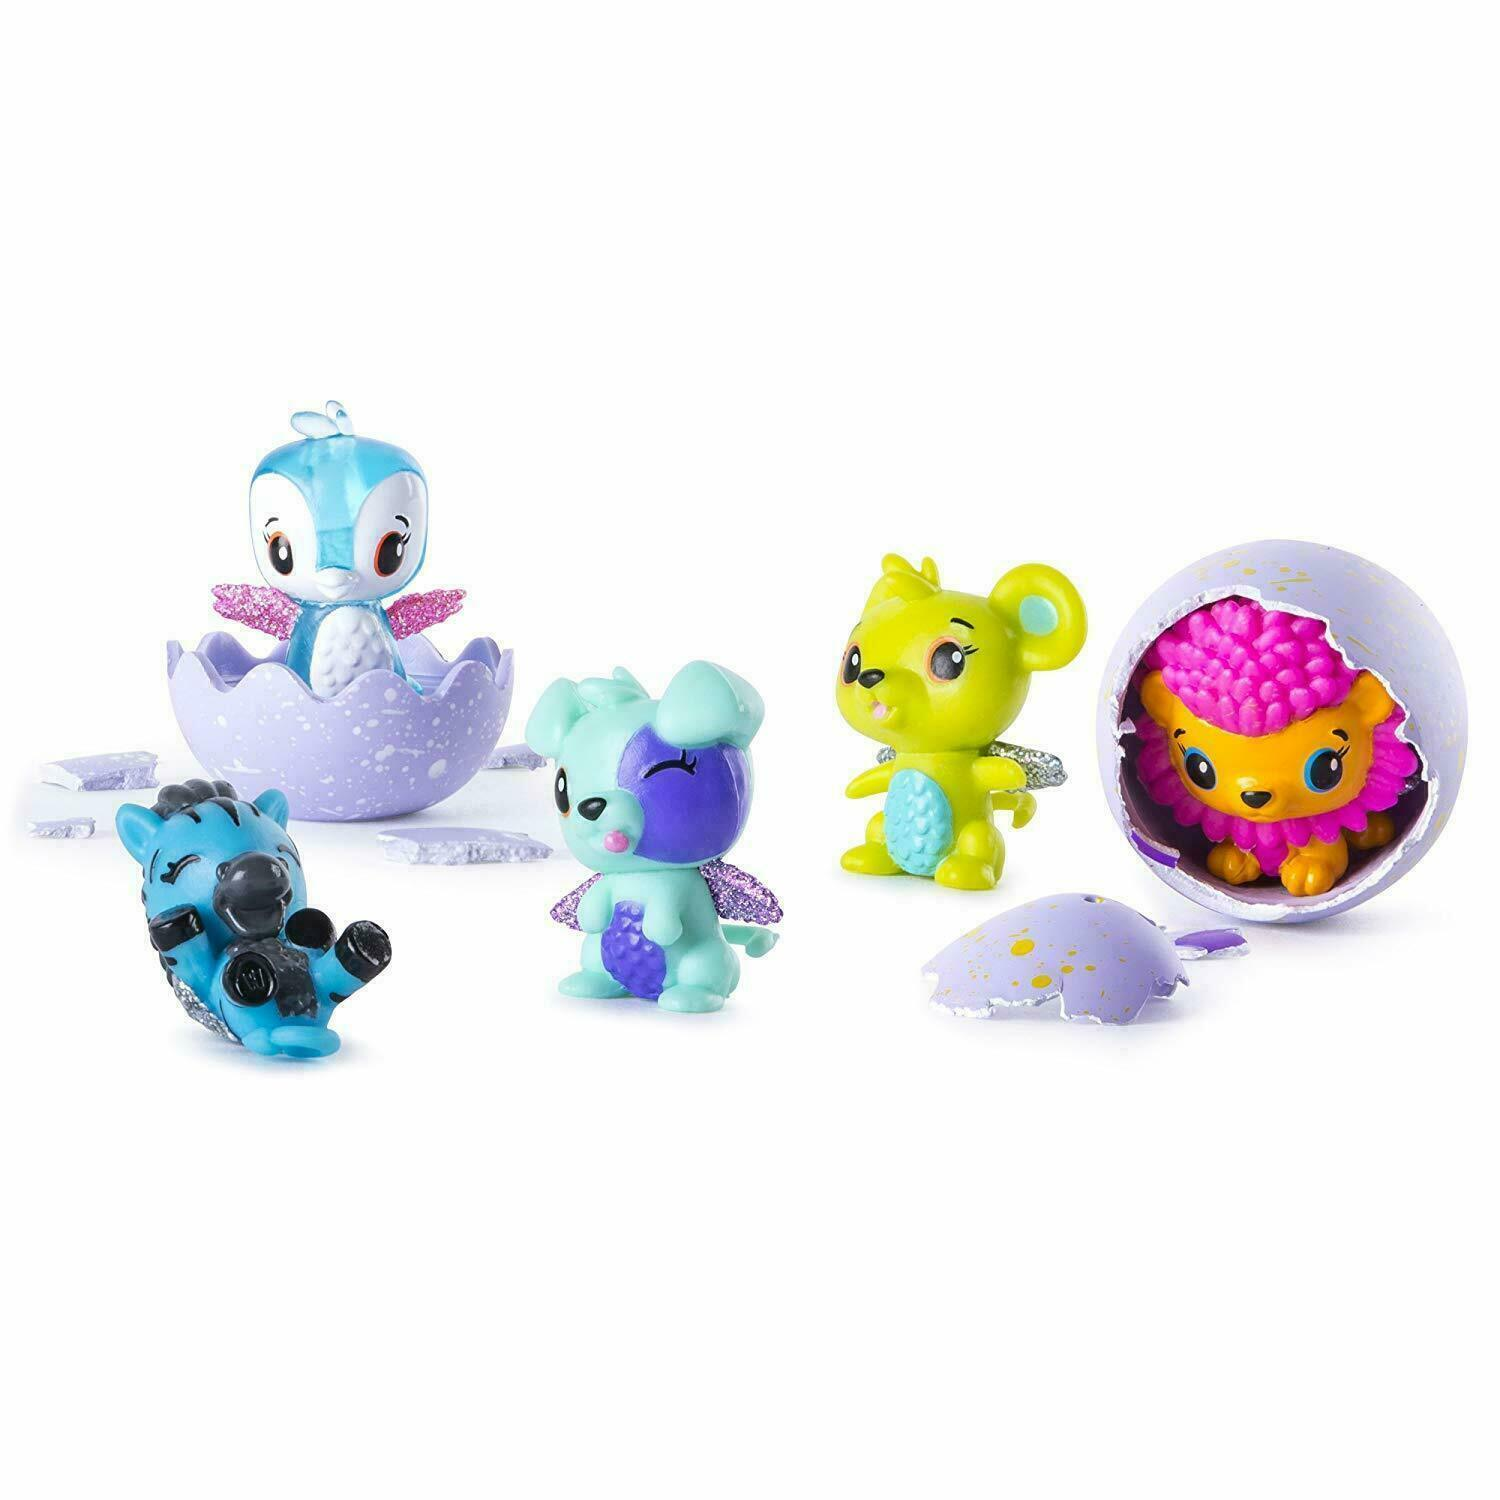 Hatchimals - CollEGGtibles - 4-Pack + Bonus (Styles & Colors May Vary)